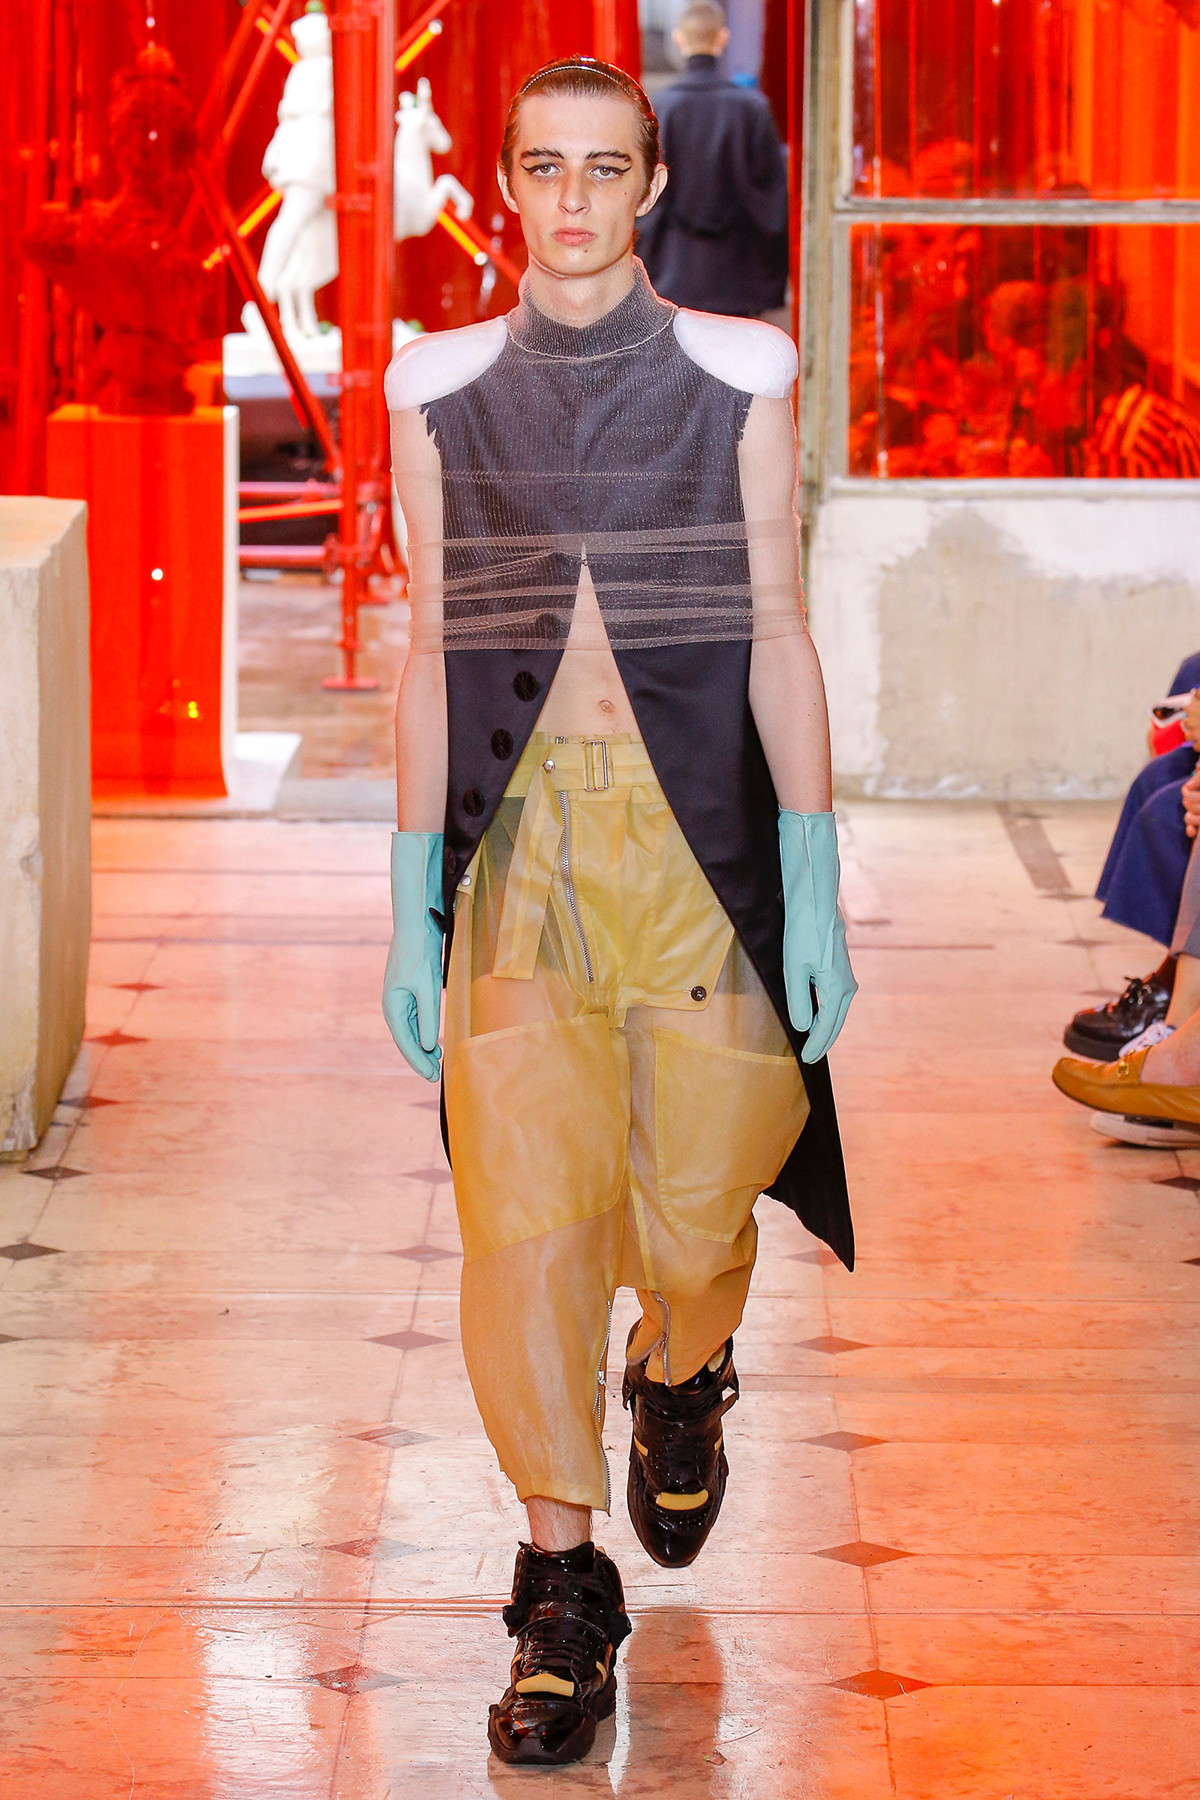 John Galliano's SpringSummer 2019 Collection Is Rife With Sensual Thirties Dresses photo